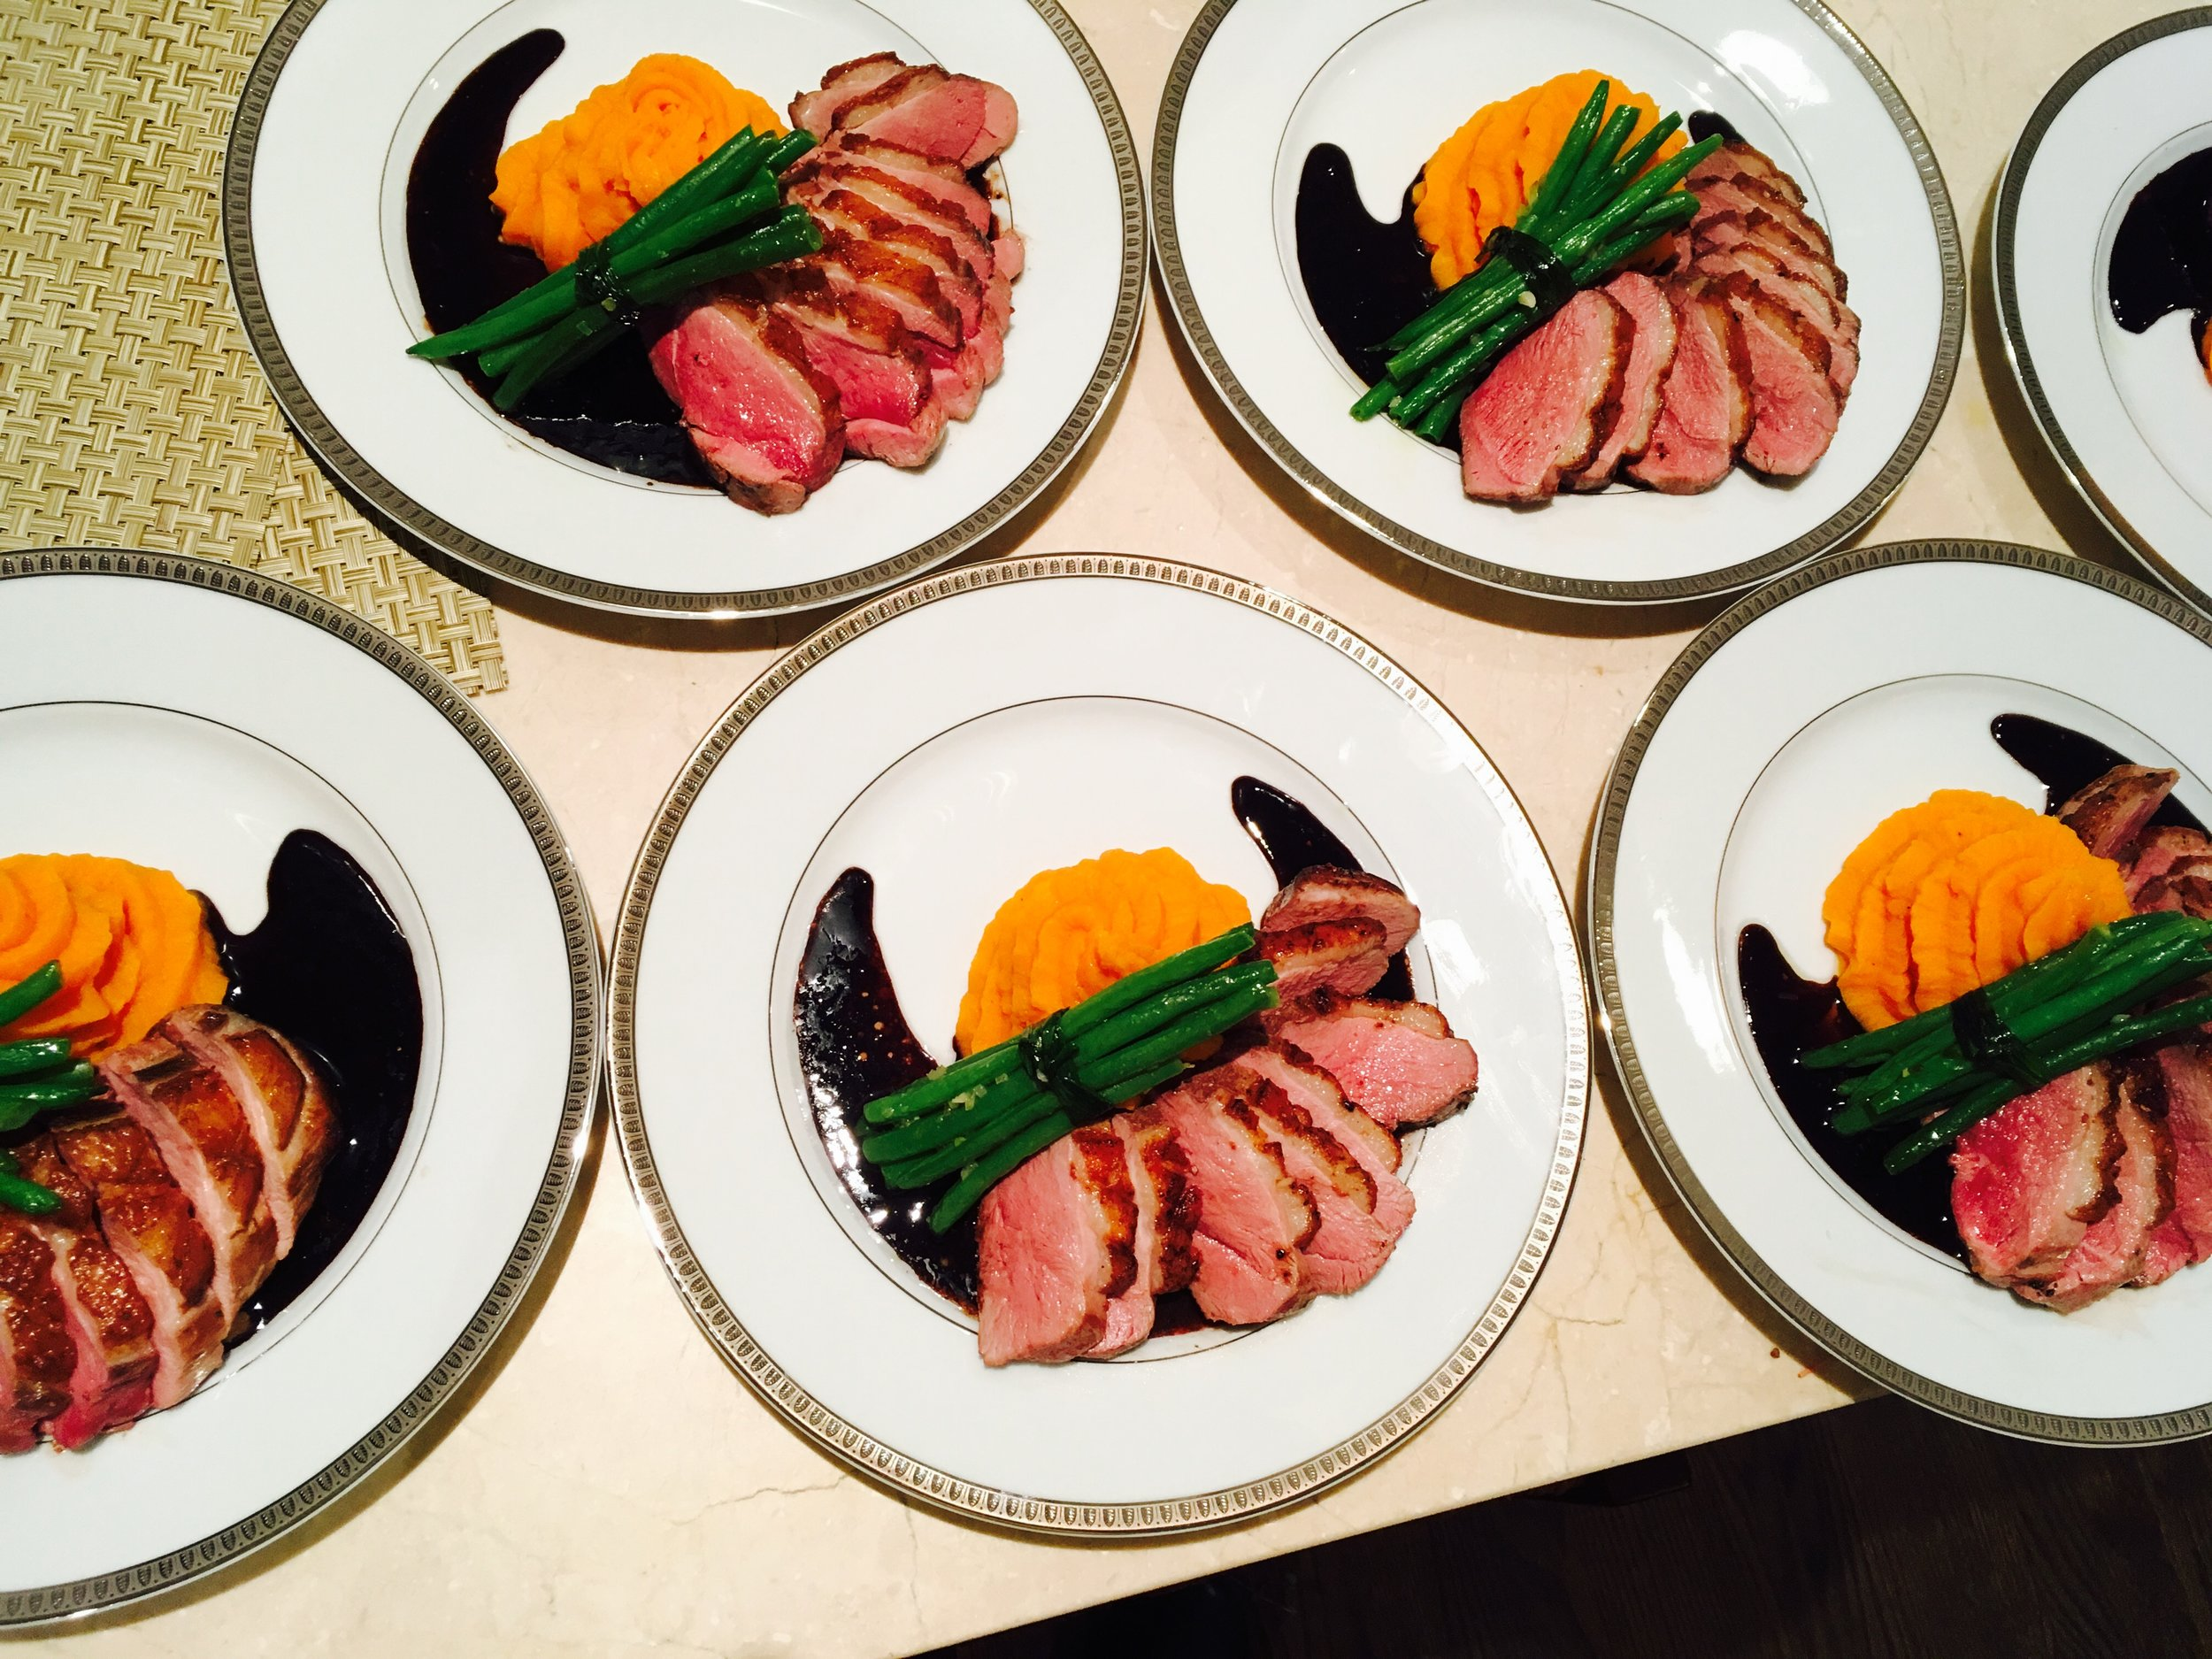 Pan Roasted Duck Breast with Sweet Potato Purée, Haricots Verts, and a Cassis Reduction